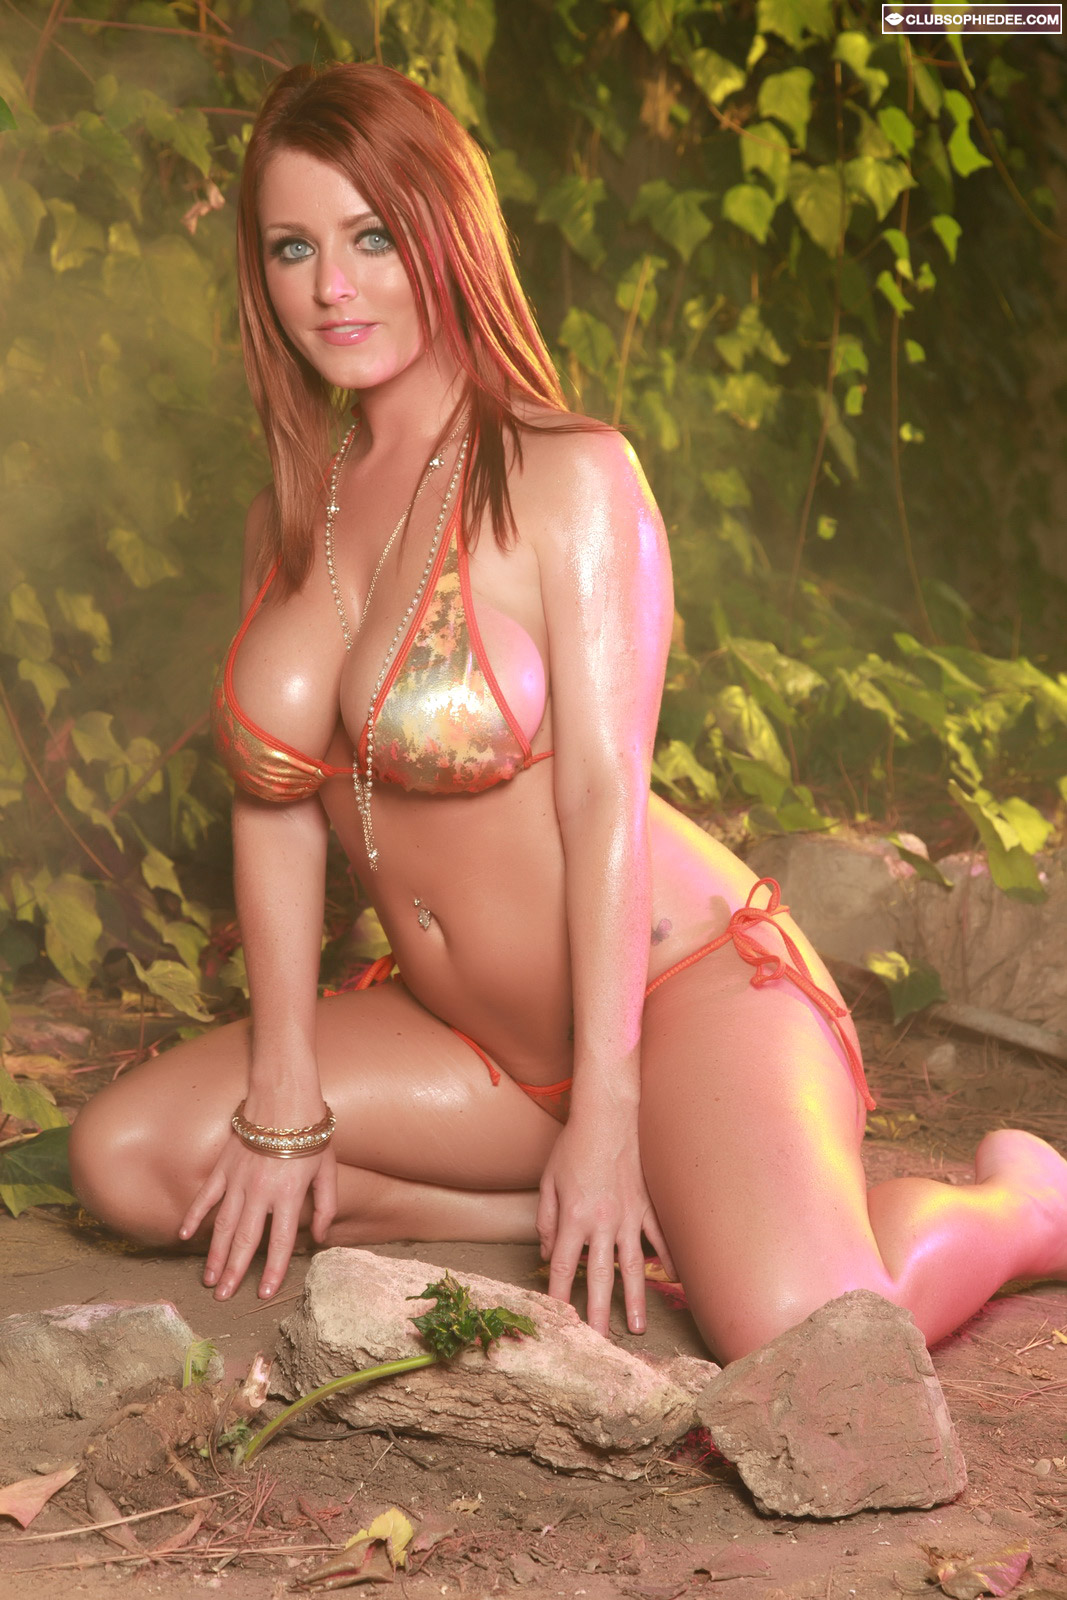 Jungle nude wild girl